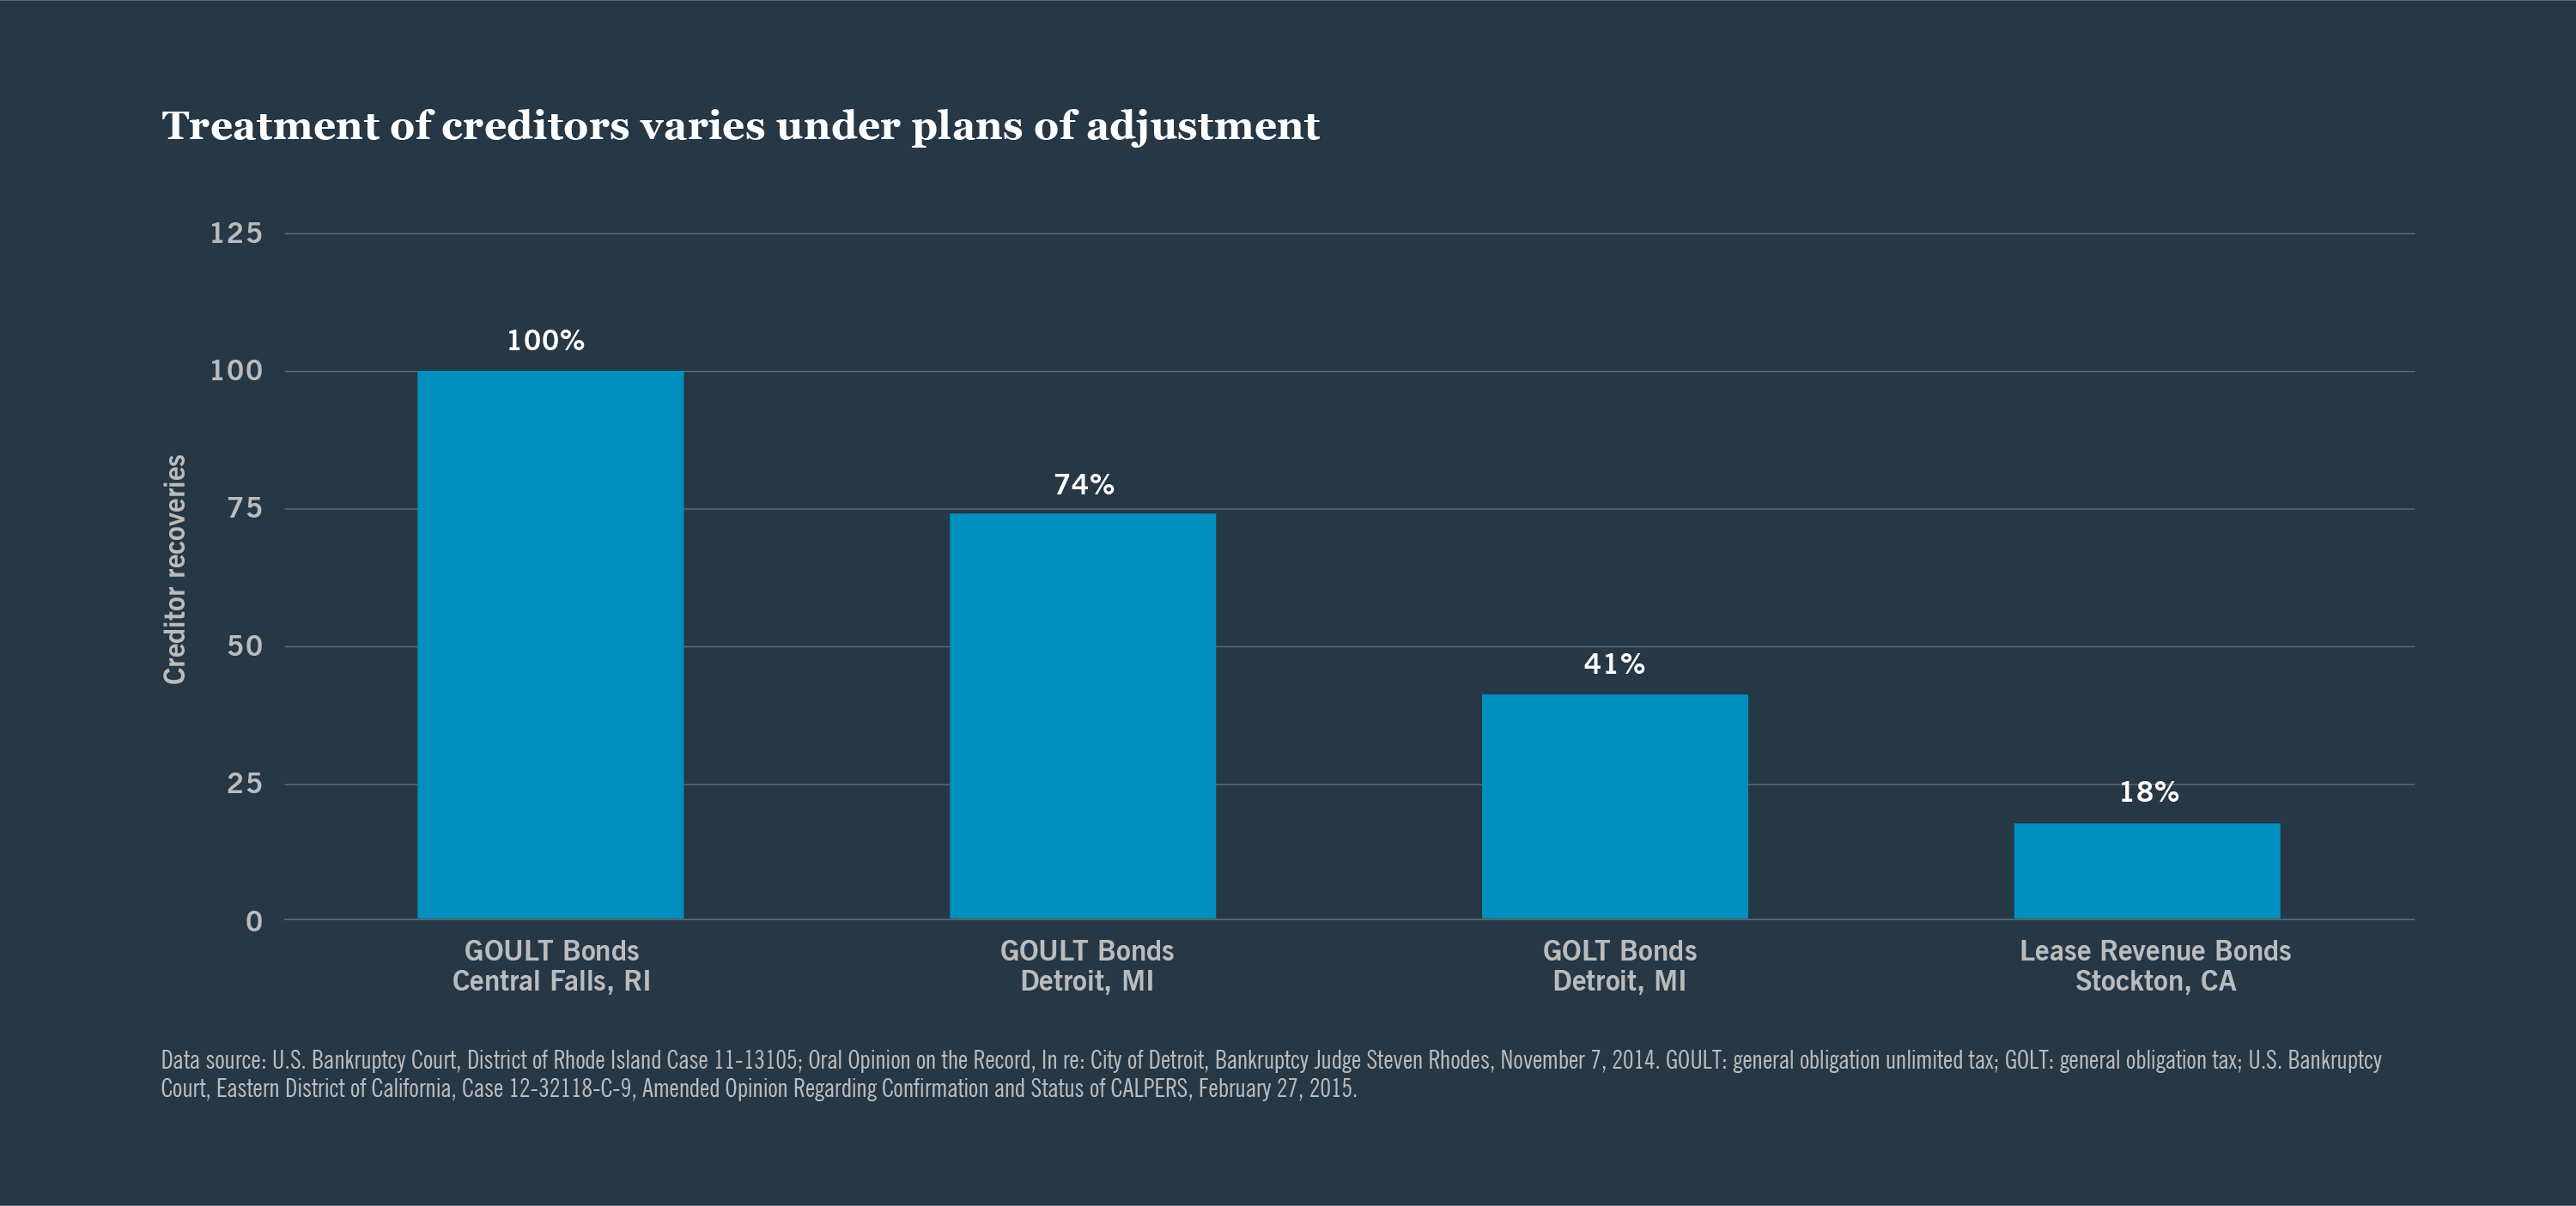 Treatment of creditors varies under plans of adjustment - bar chart